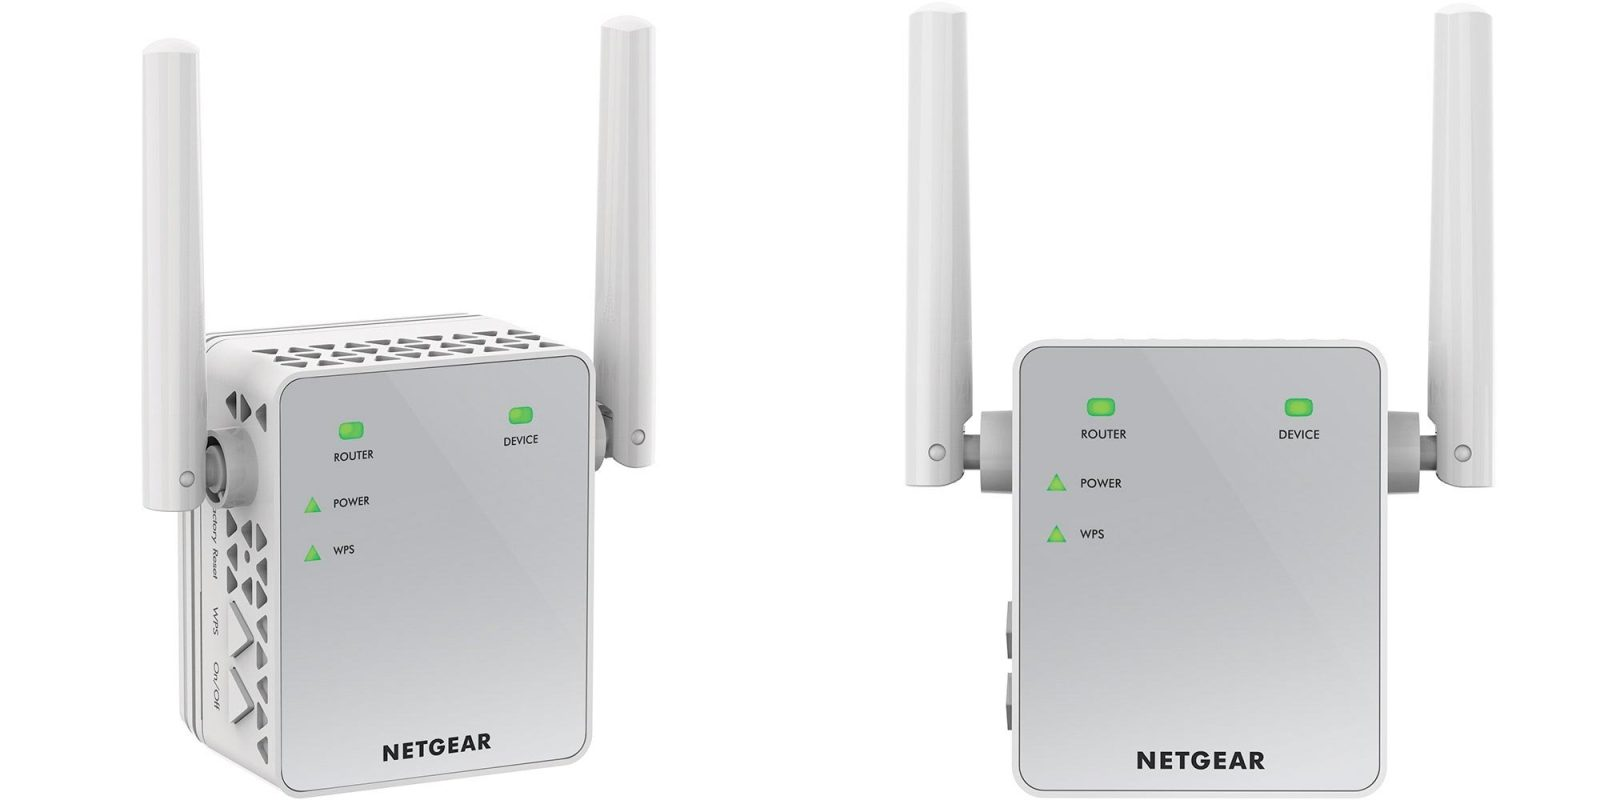 Expand your home network w/ NETGEAR's 802 11ac range